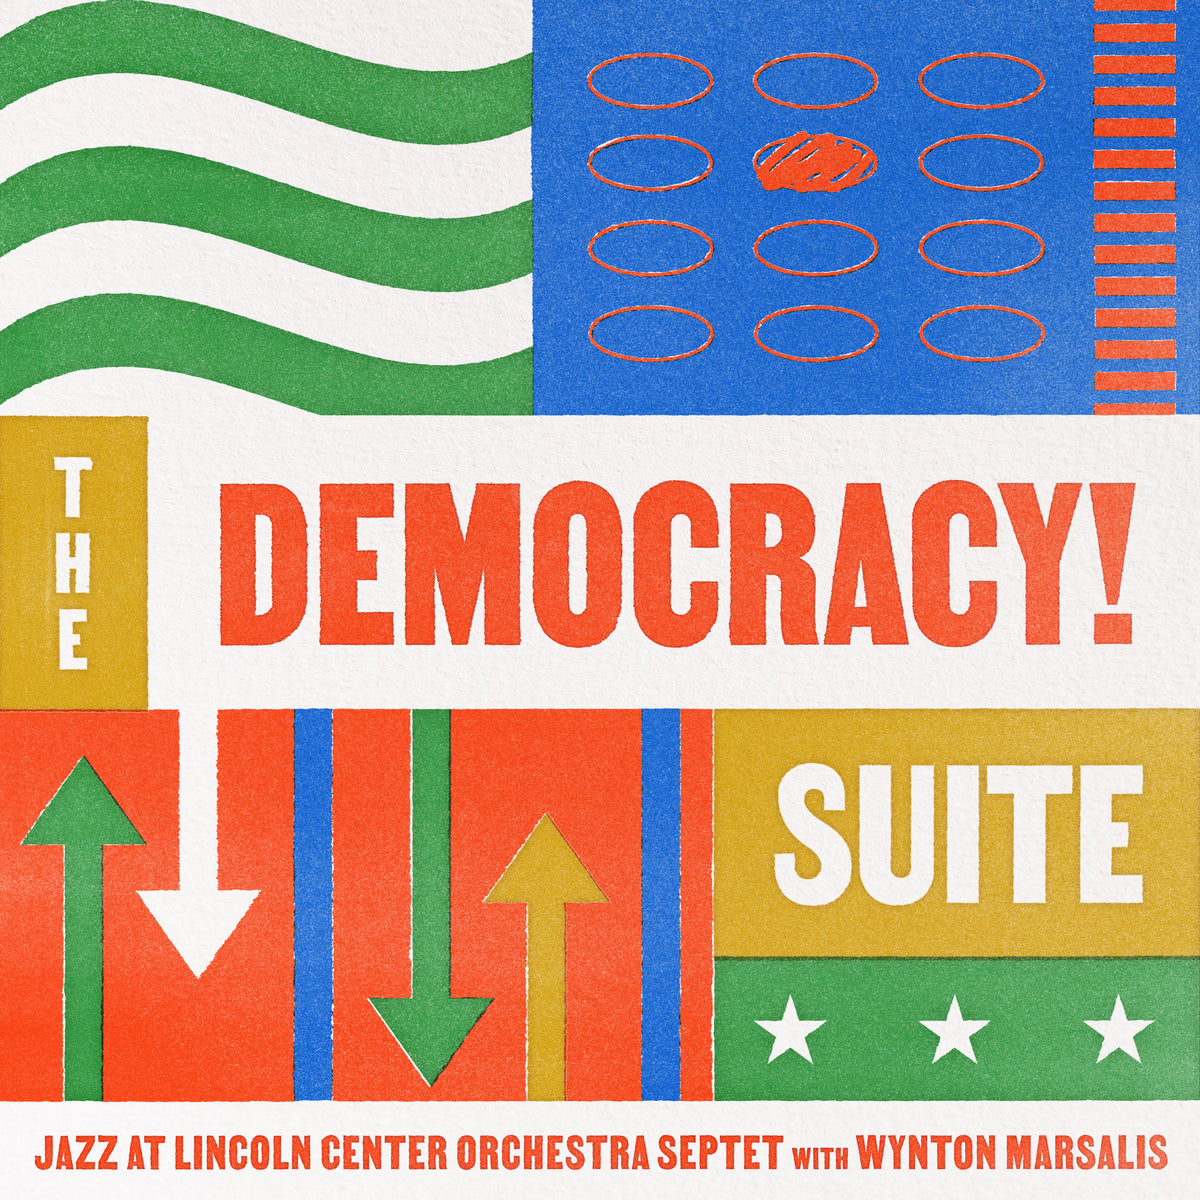 Pre-order: The Democracy! Suite by the Jazz at Lincoln Center Orchestra Septet with Wynton Marsalis.